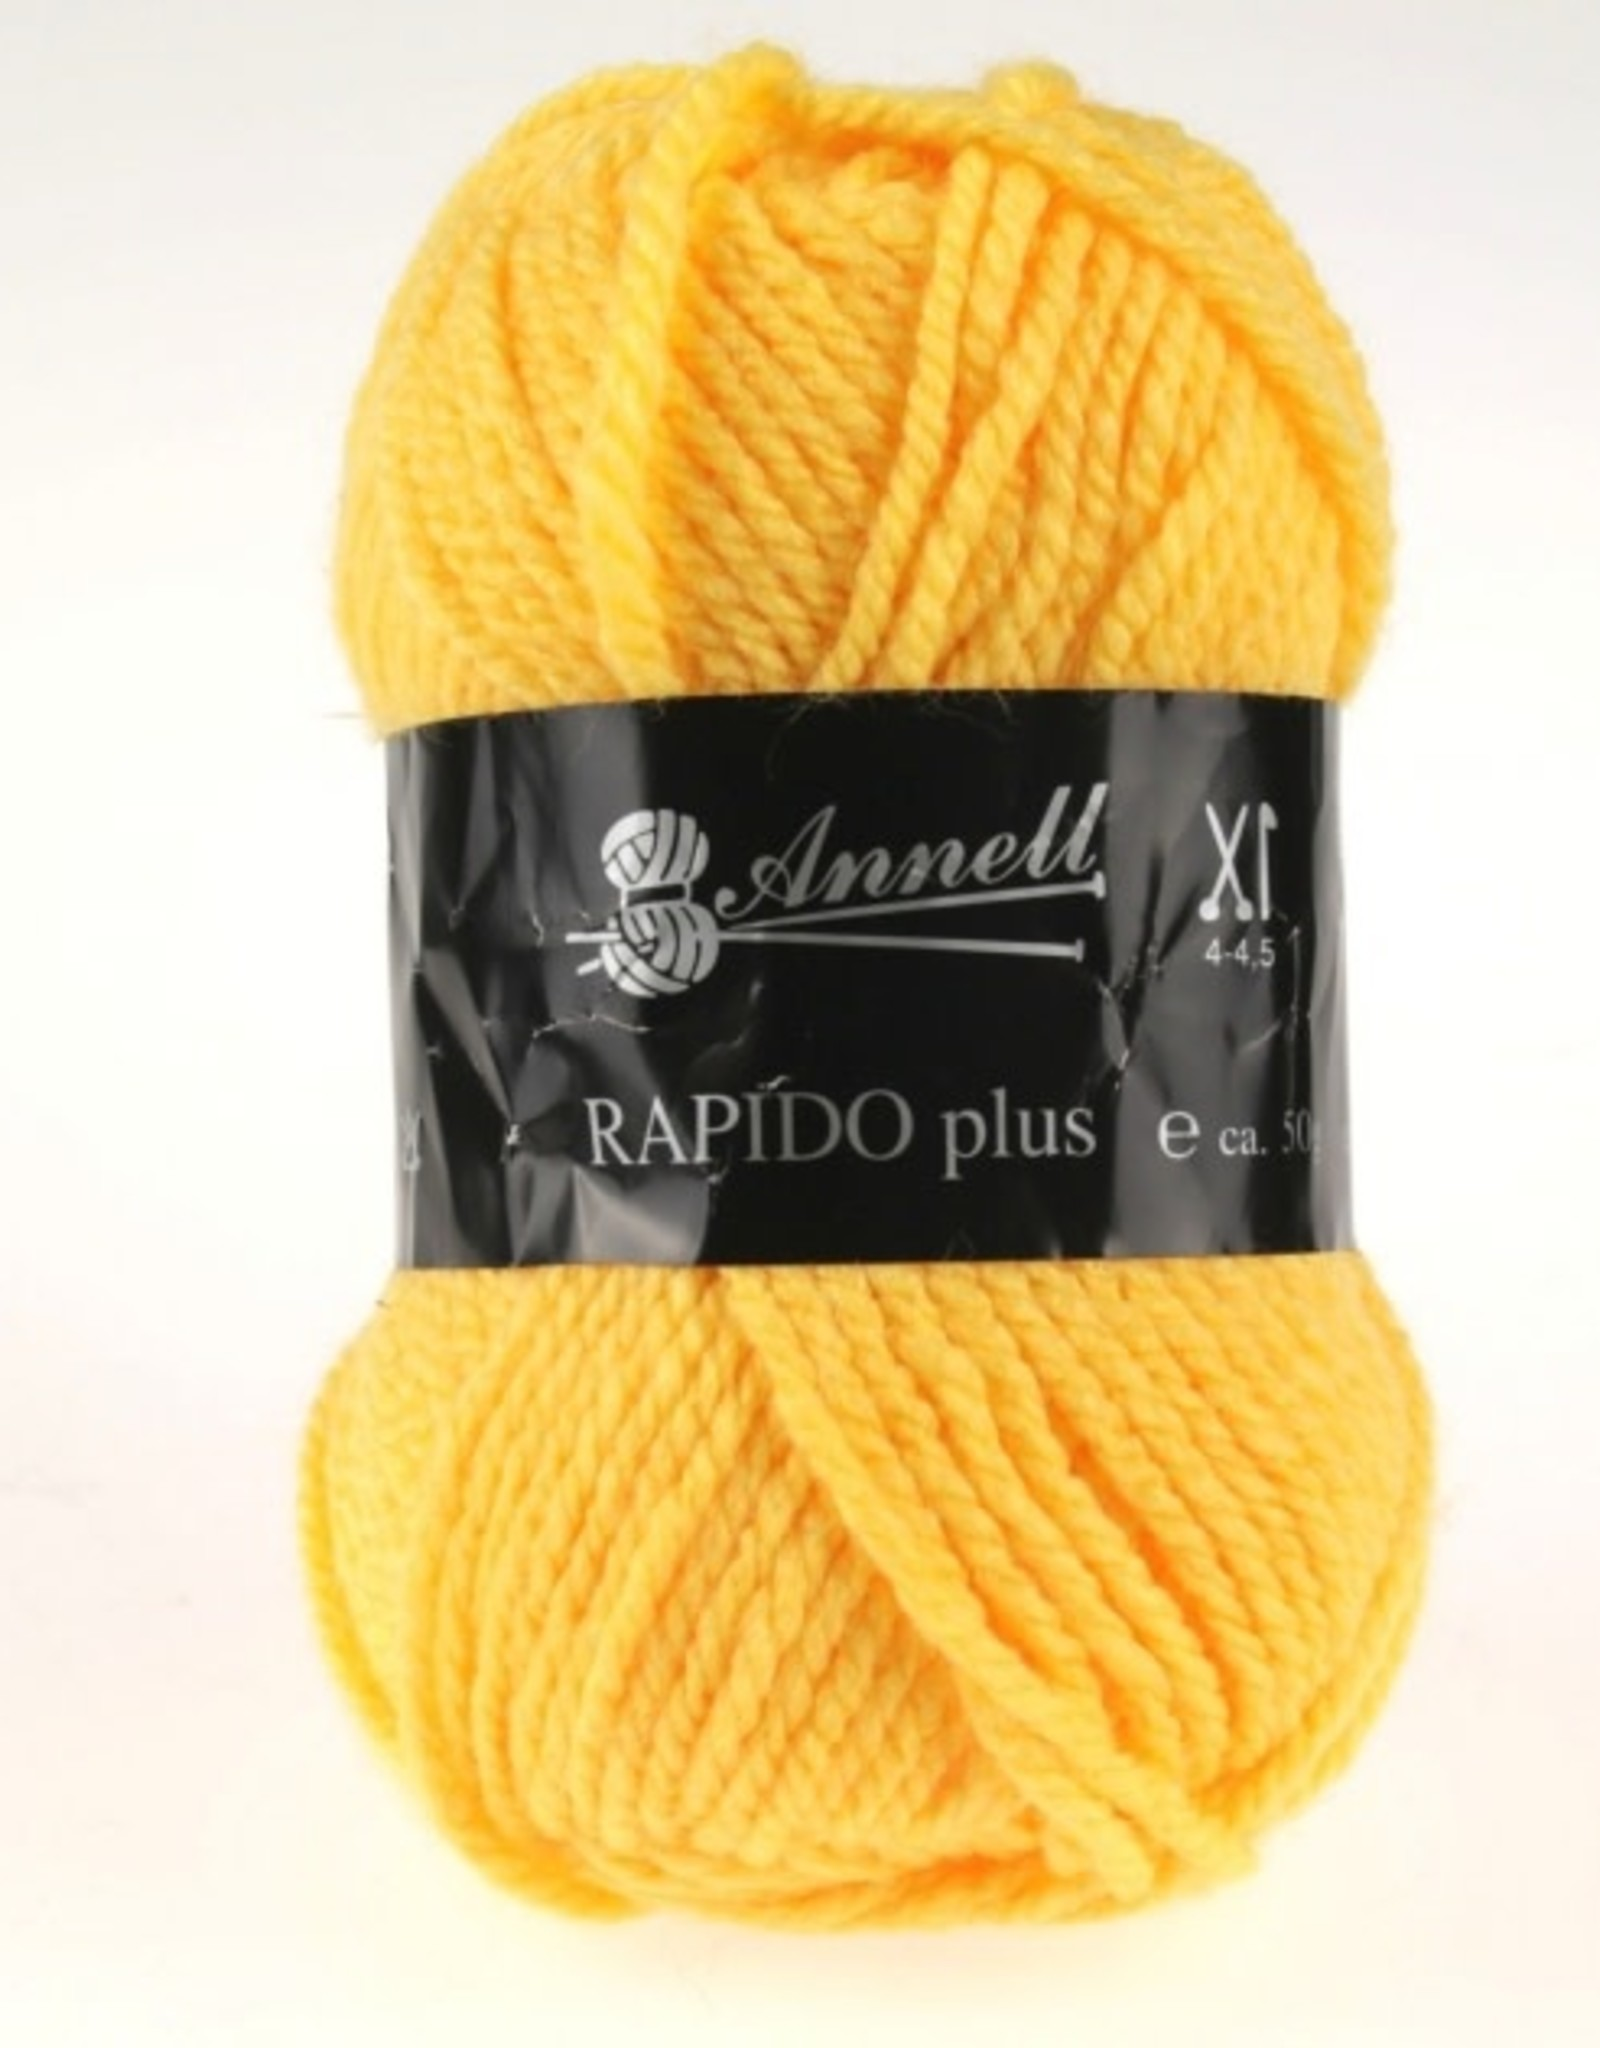 Annell Annell rapido plus 9215